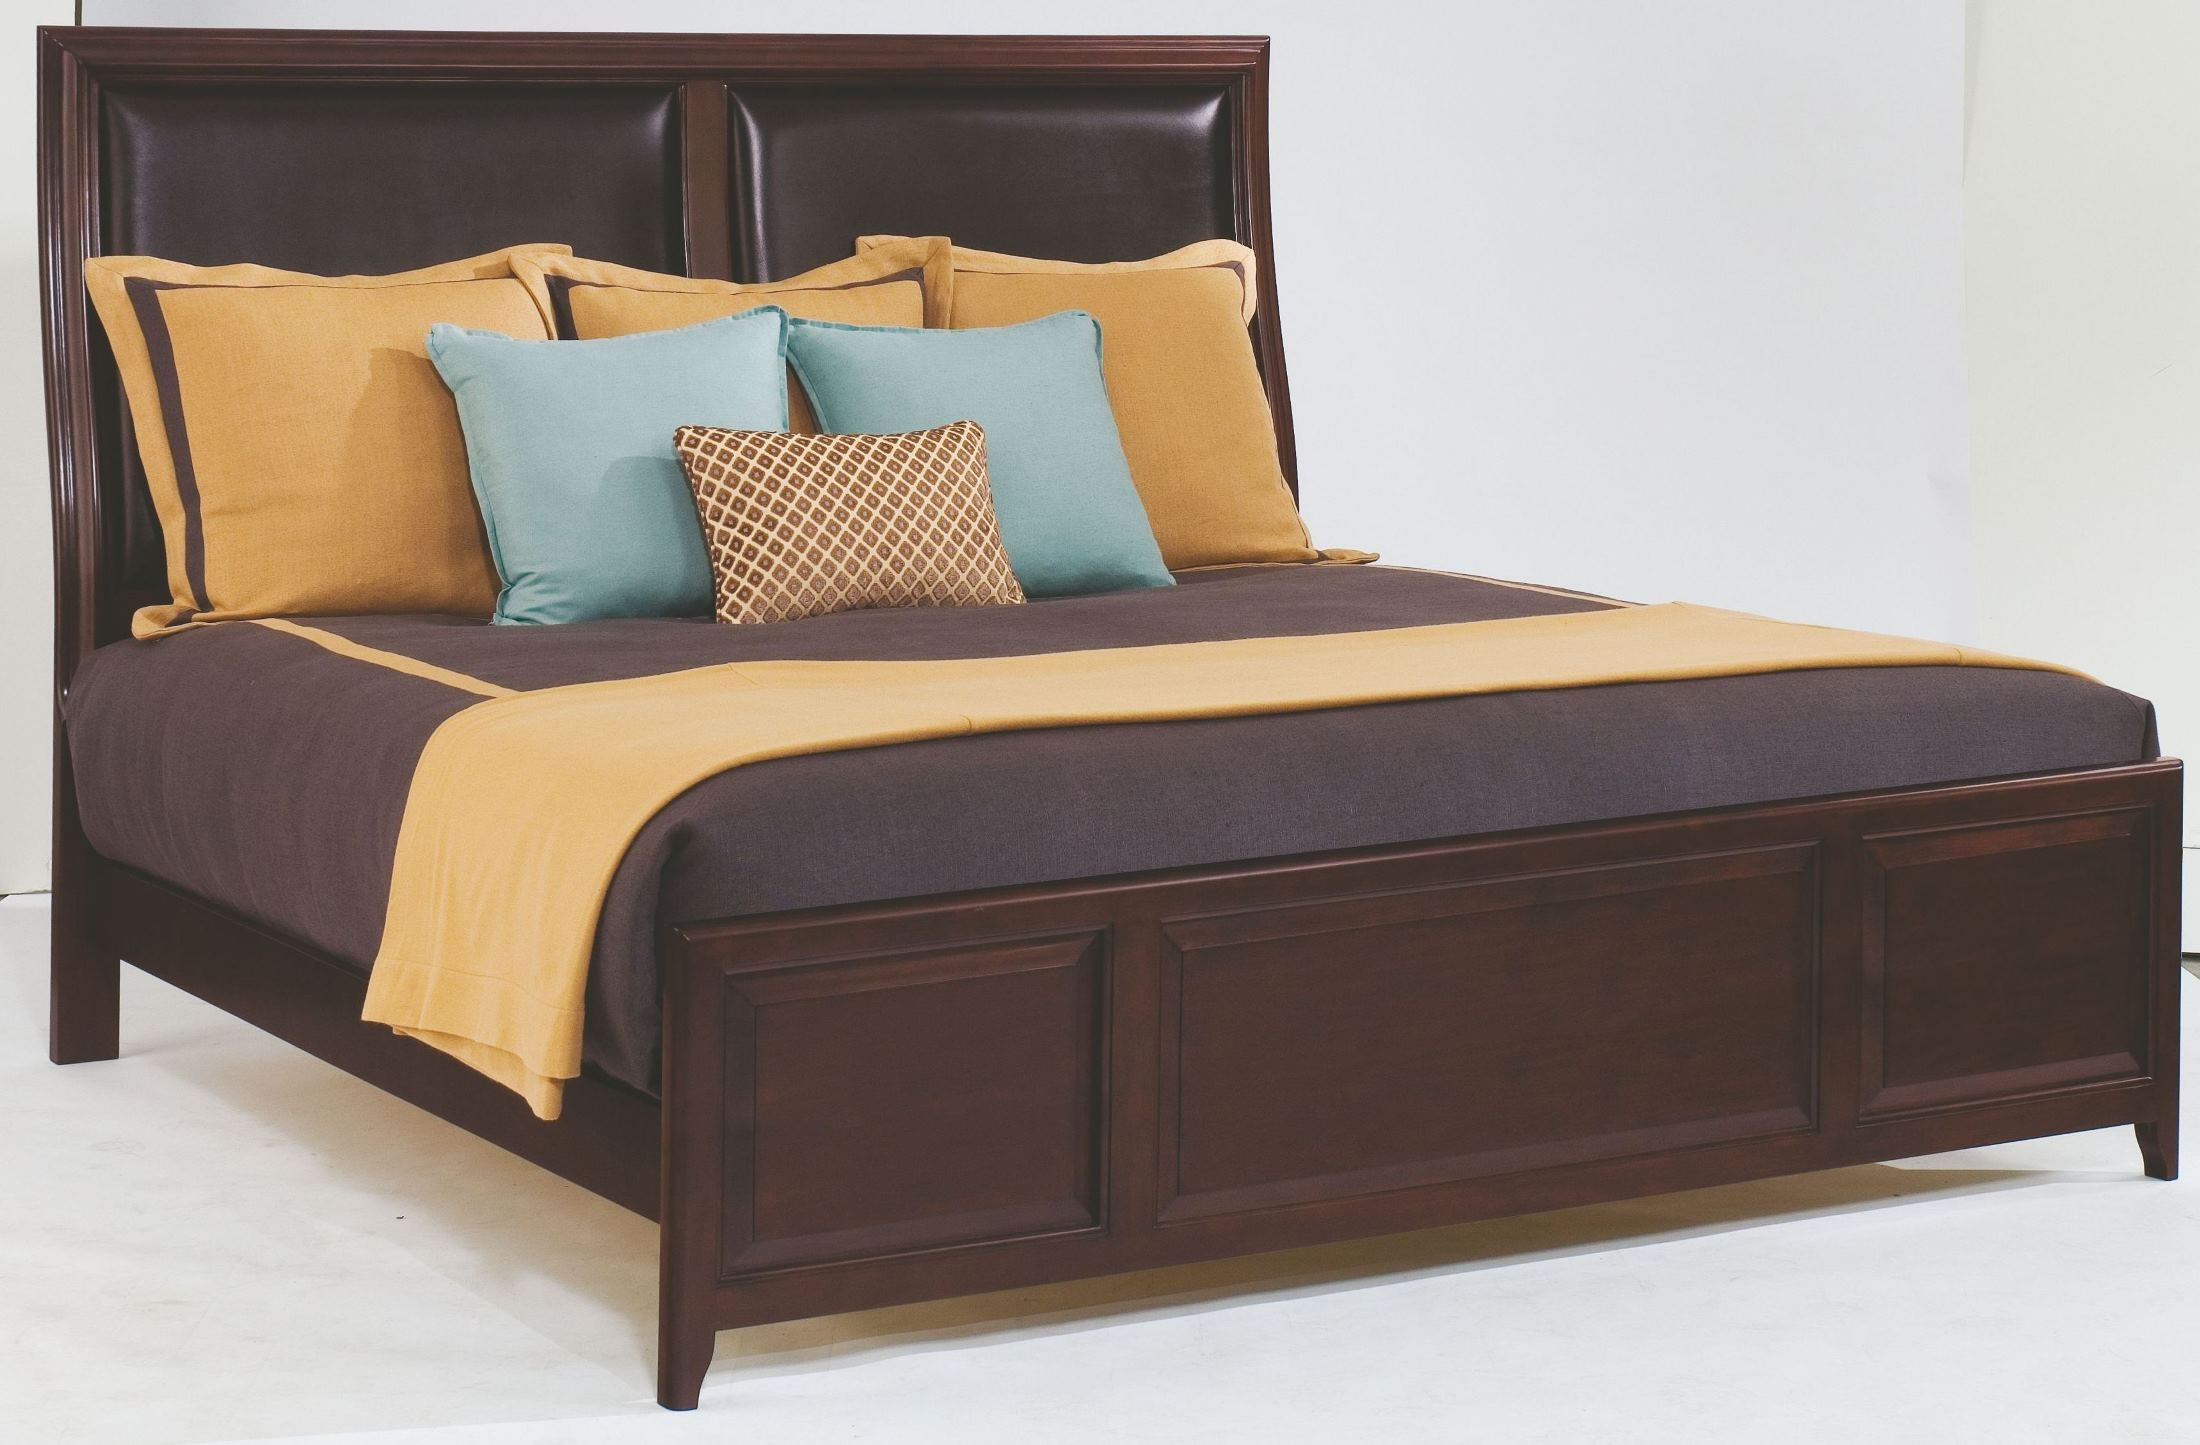 Alston leather king panel bed from kincaid 92 152p for Leather bedroom furniture